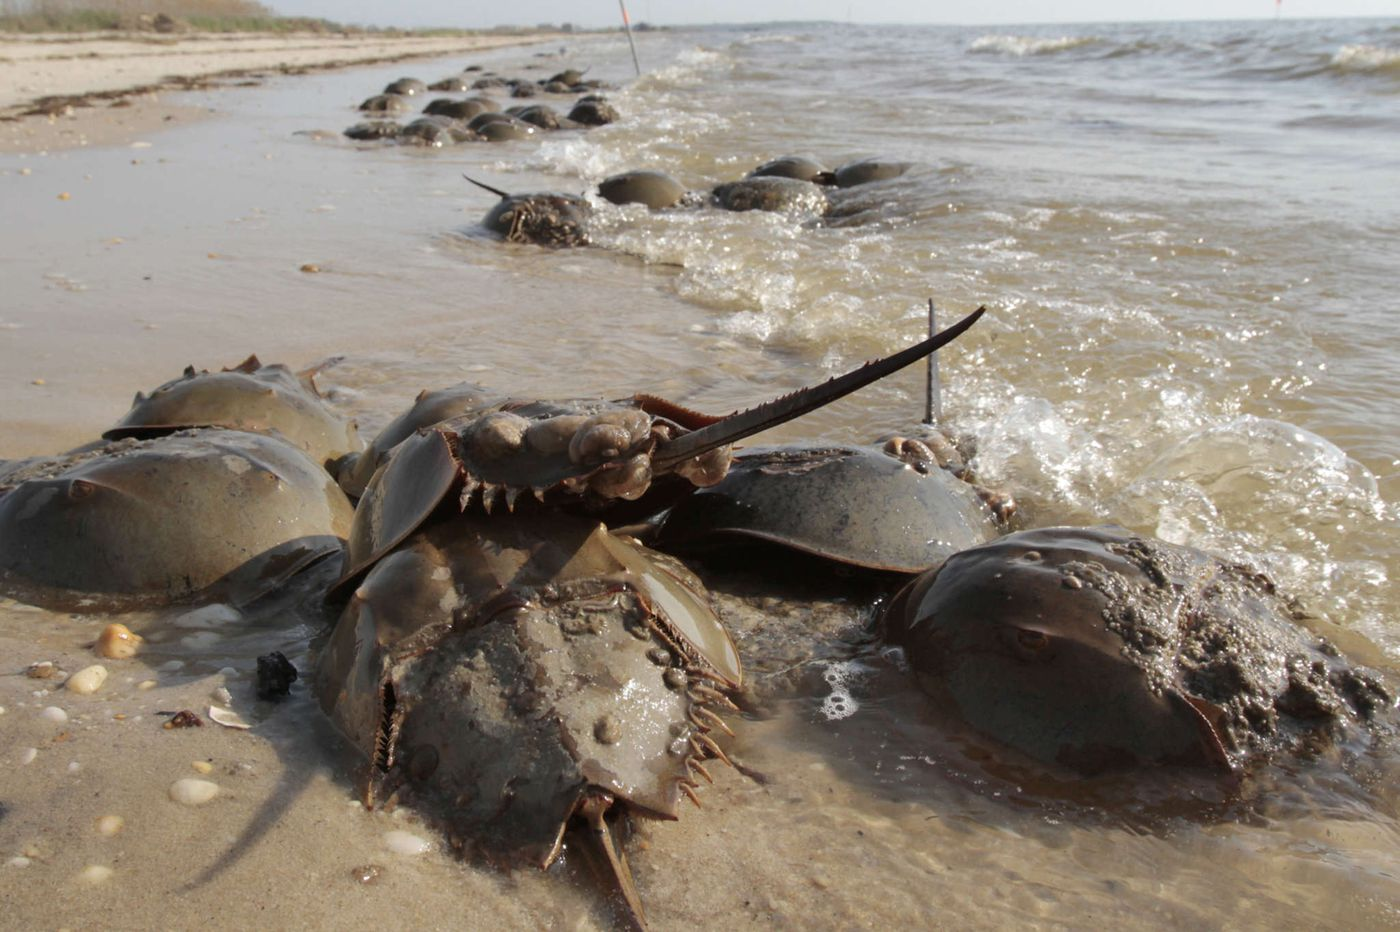 Horseshoe crabs are bled by the thousands for medical tests every year. Some fear an escalation due to COVID-19.